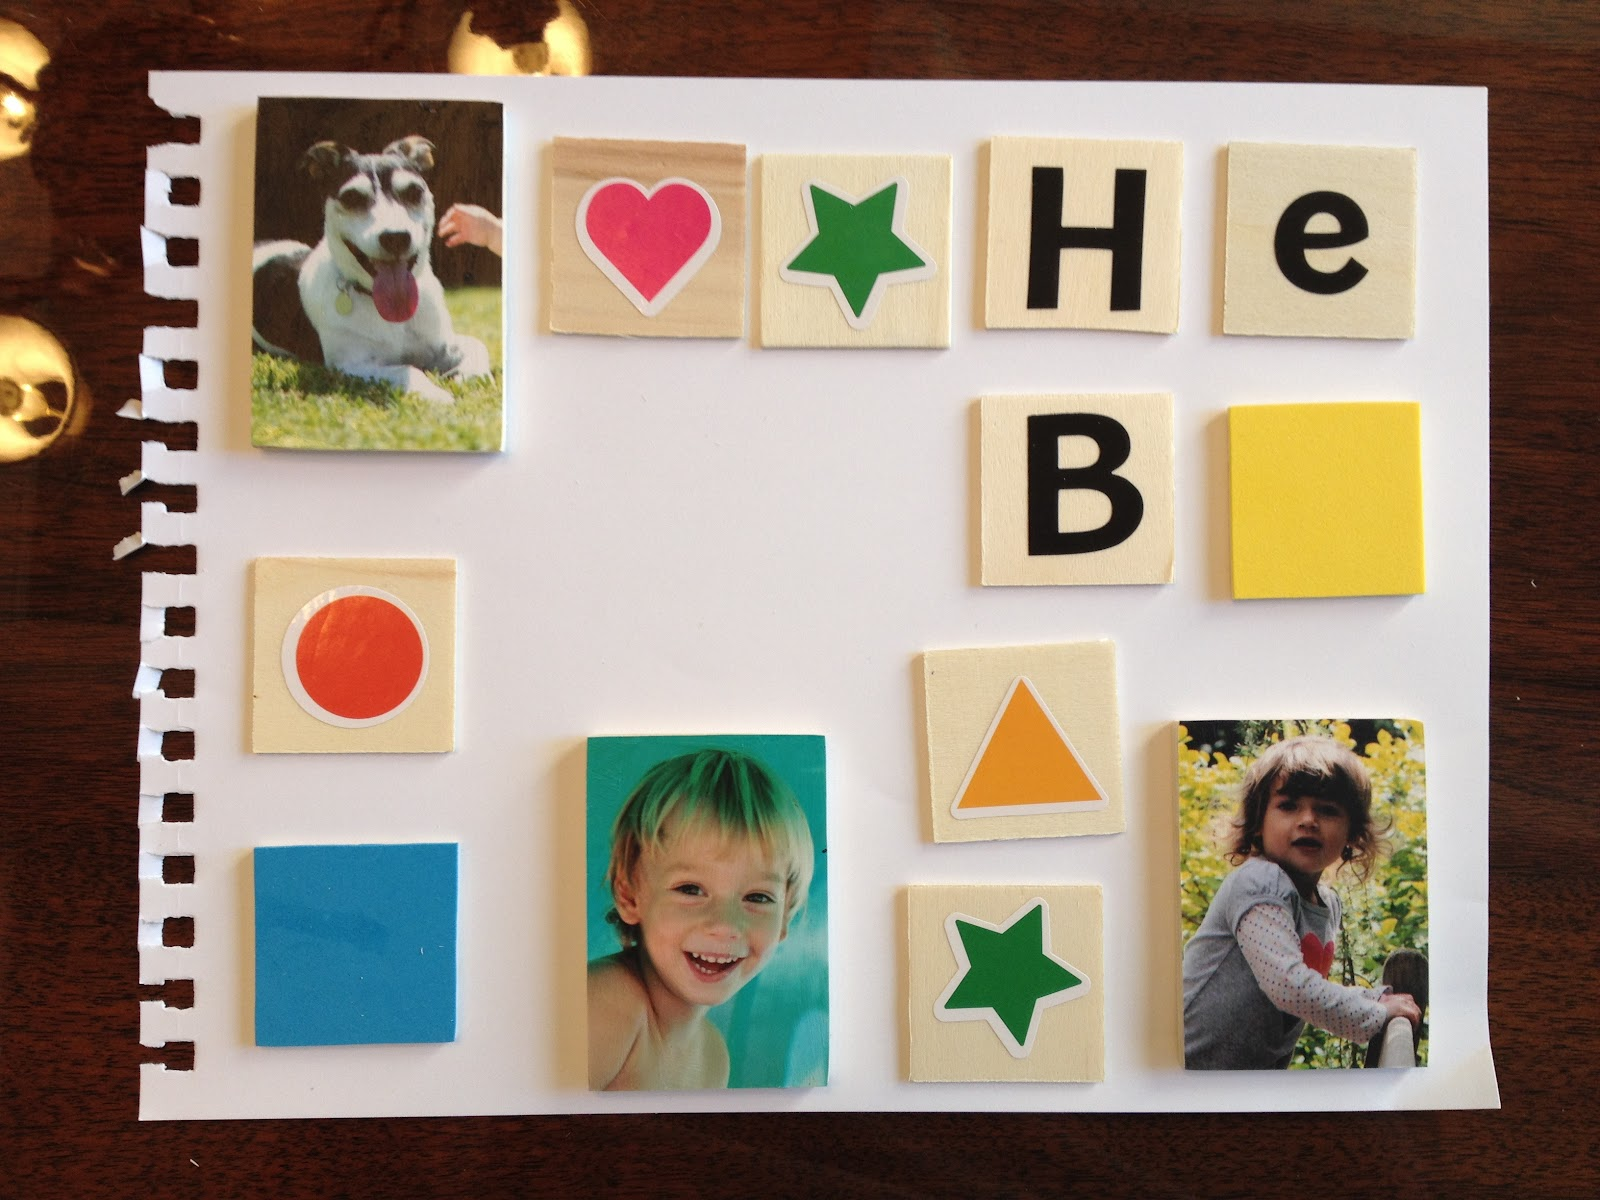 Play tiles activities for children do it yourself letters play tiles activities for children do it yourself lettersnumbers rainy day play play at home mom solutioingenieria Choice Image